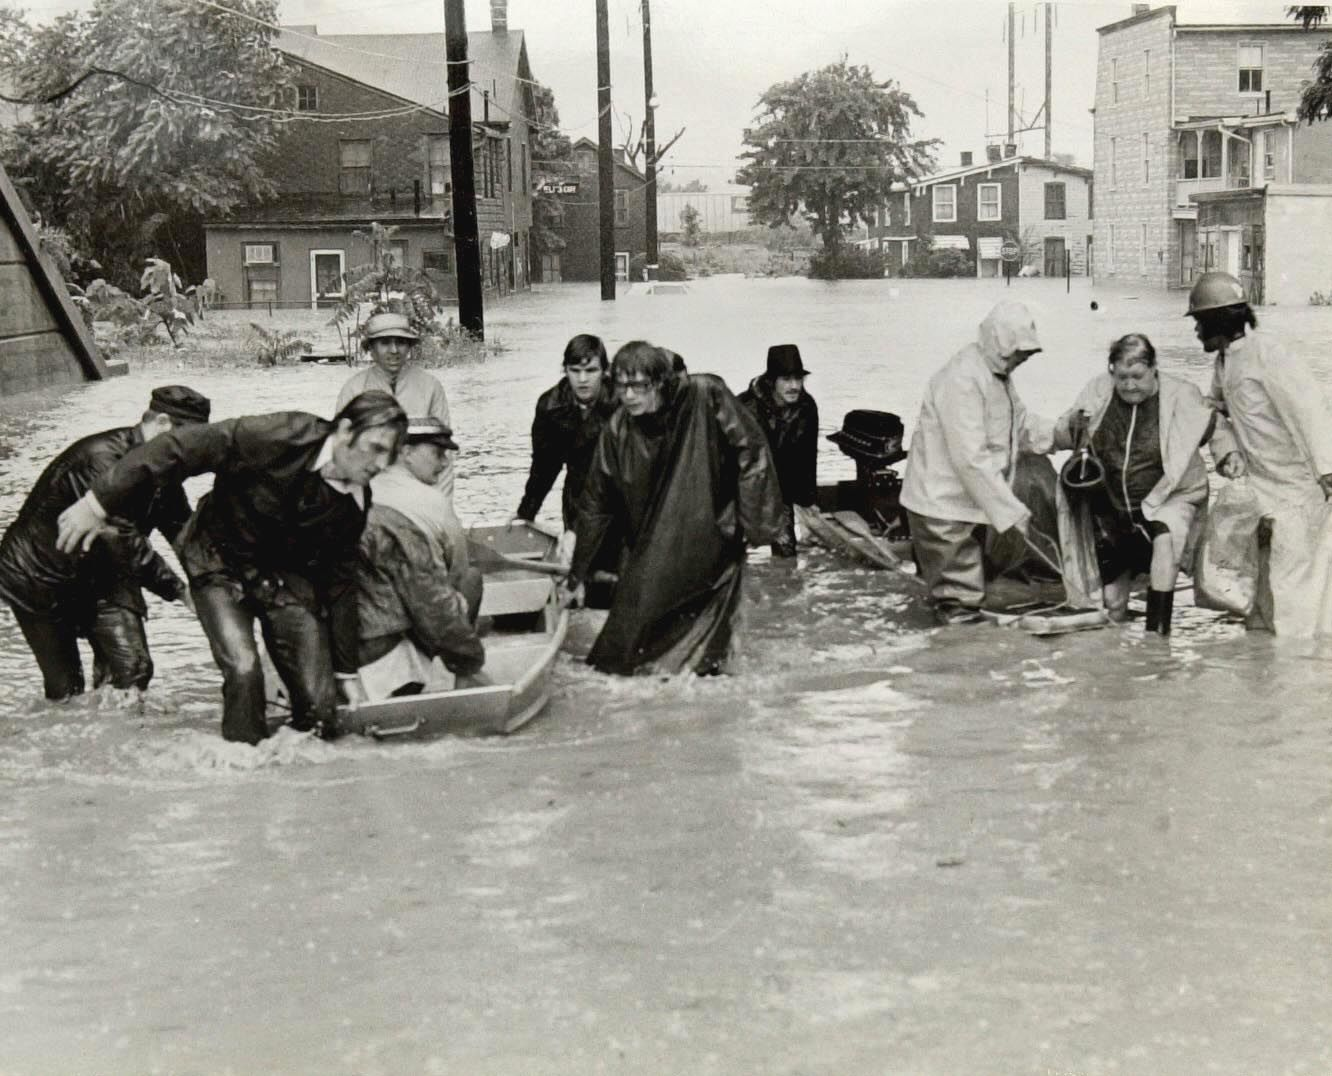 ** ADVANCE FOR SUNDAY, JUNE 16, 2002  FILE ** This June 23, 1972 file photo shows people being rescued by boat from their homes to dry ground after  Hurricane Agnes forced the Susquehanna River to overflow its banks causing heavy flooding in  Harrisburg, Pa. (AP Photo/Paul Vathis, File)